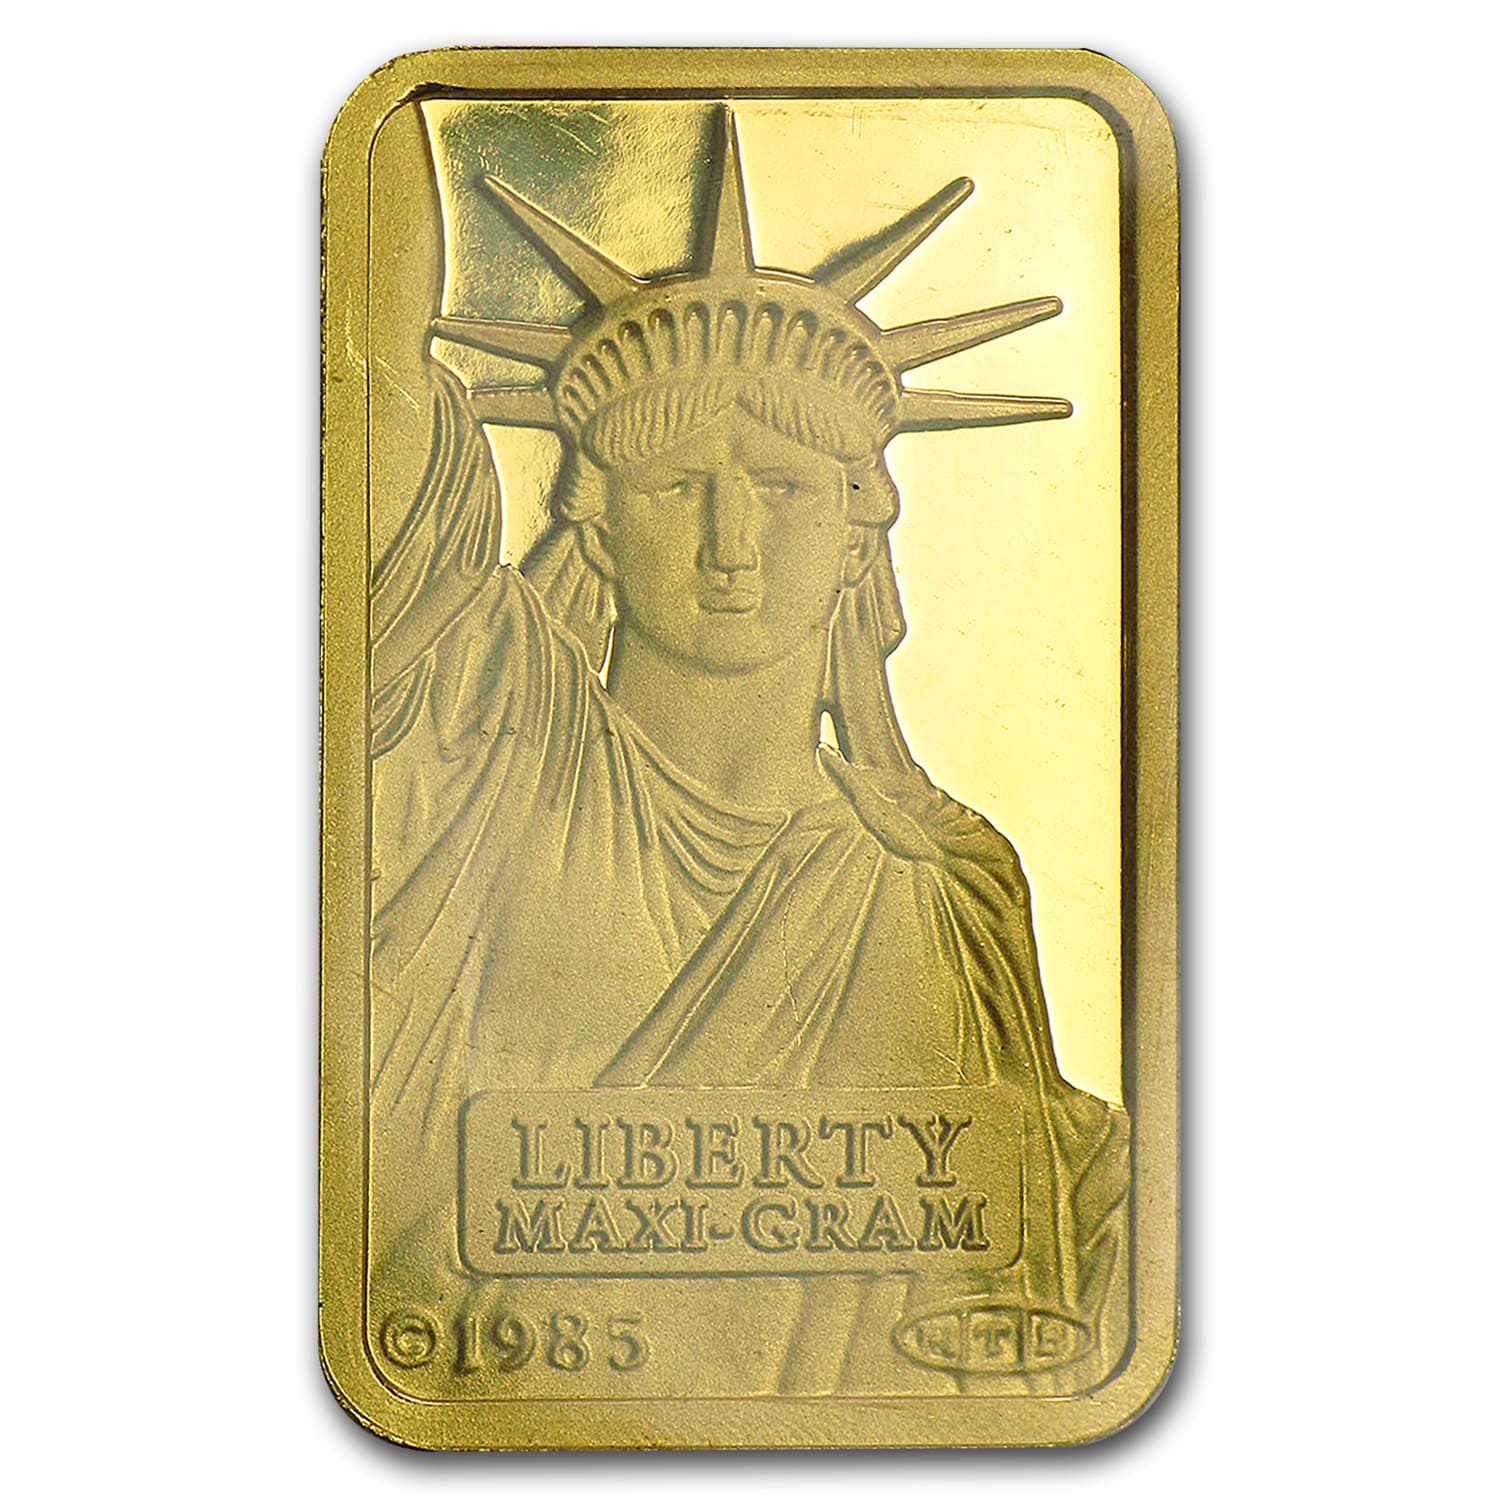 5 gram Gold Bar - Credit Suisse Statue of Liberty